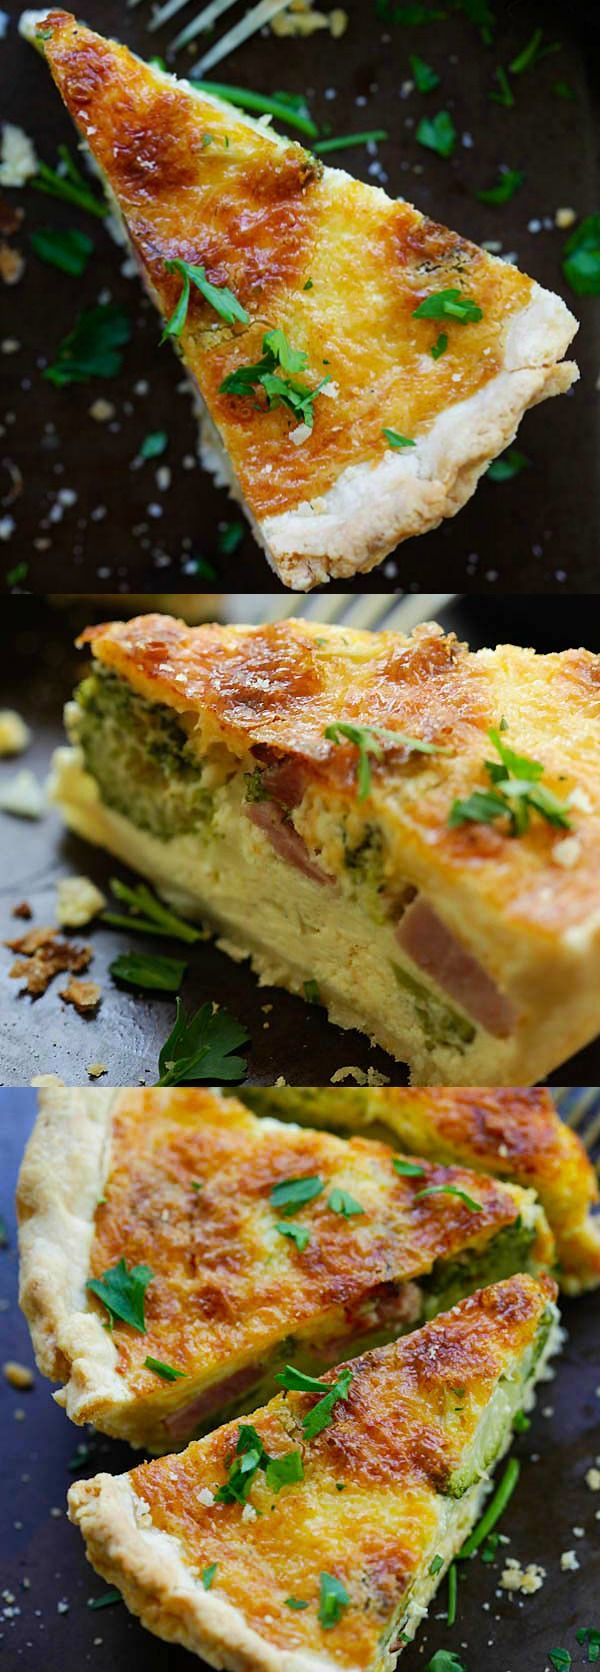 Cheesy Ham and Broccoli Quiche – the BEST homemade quiche you'll ever made, with cheesy egg custard loaded with ham and broccoli. So good | rasamalaysia.com